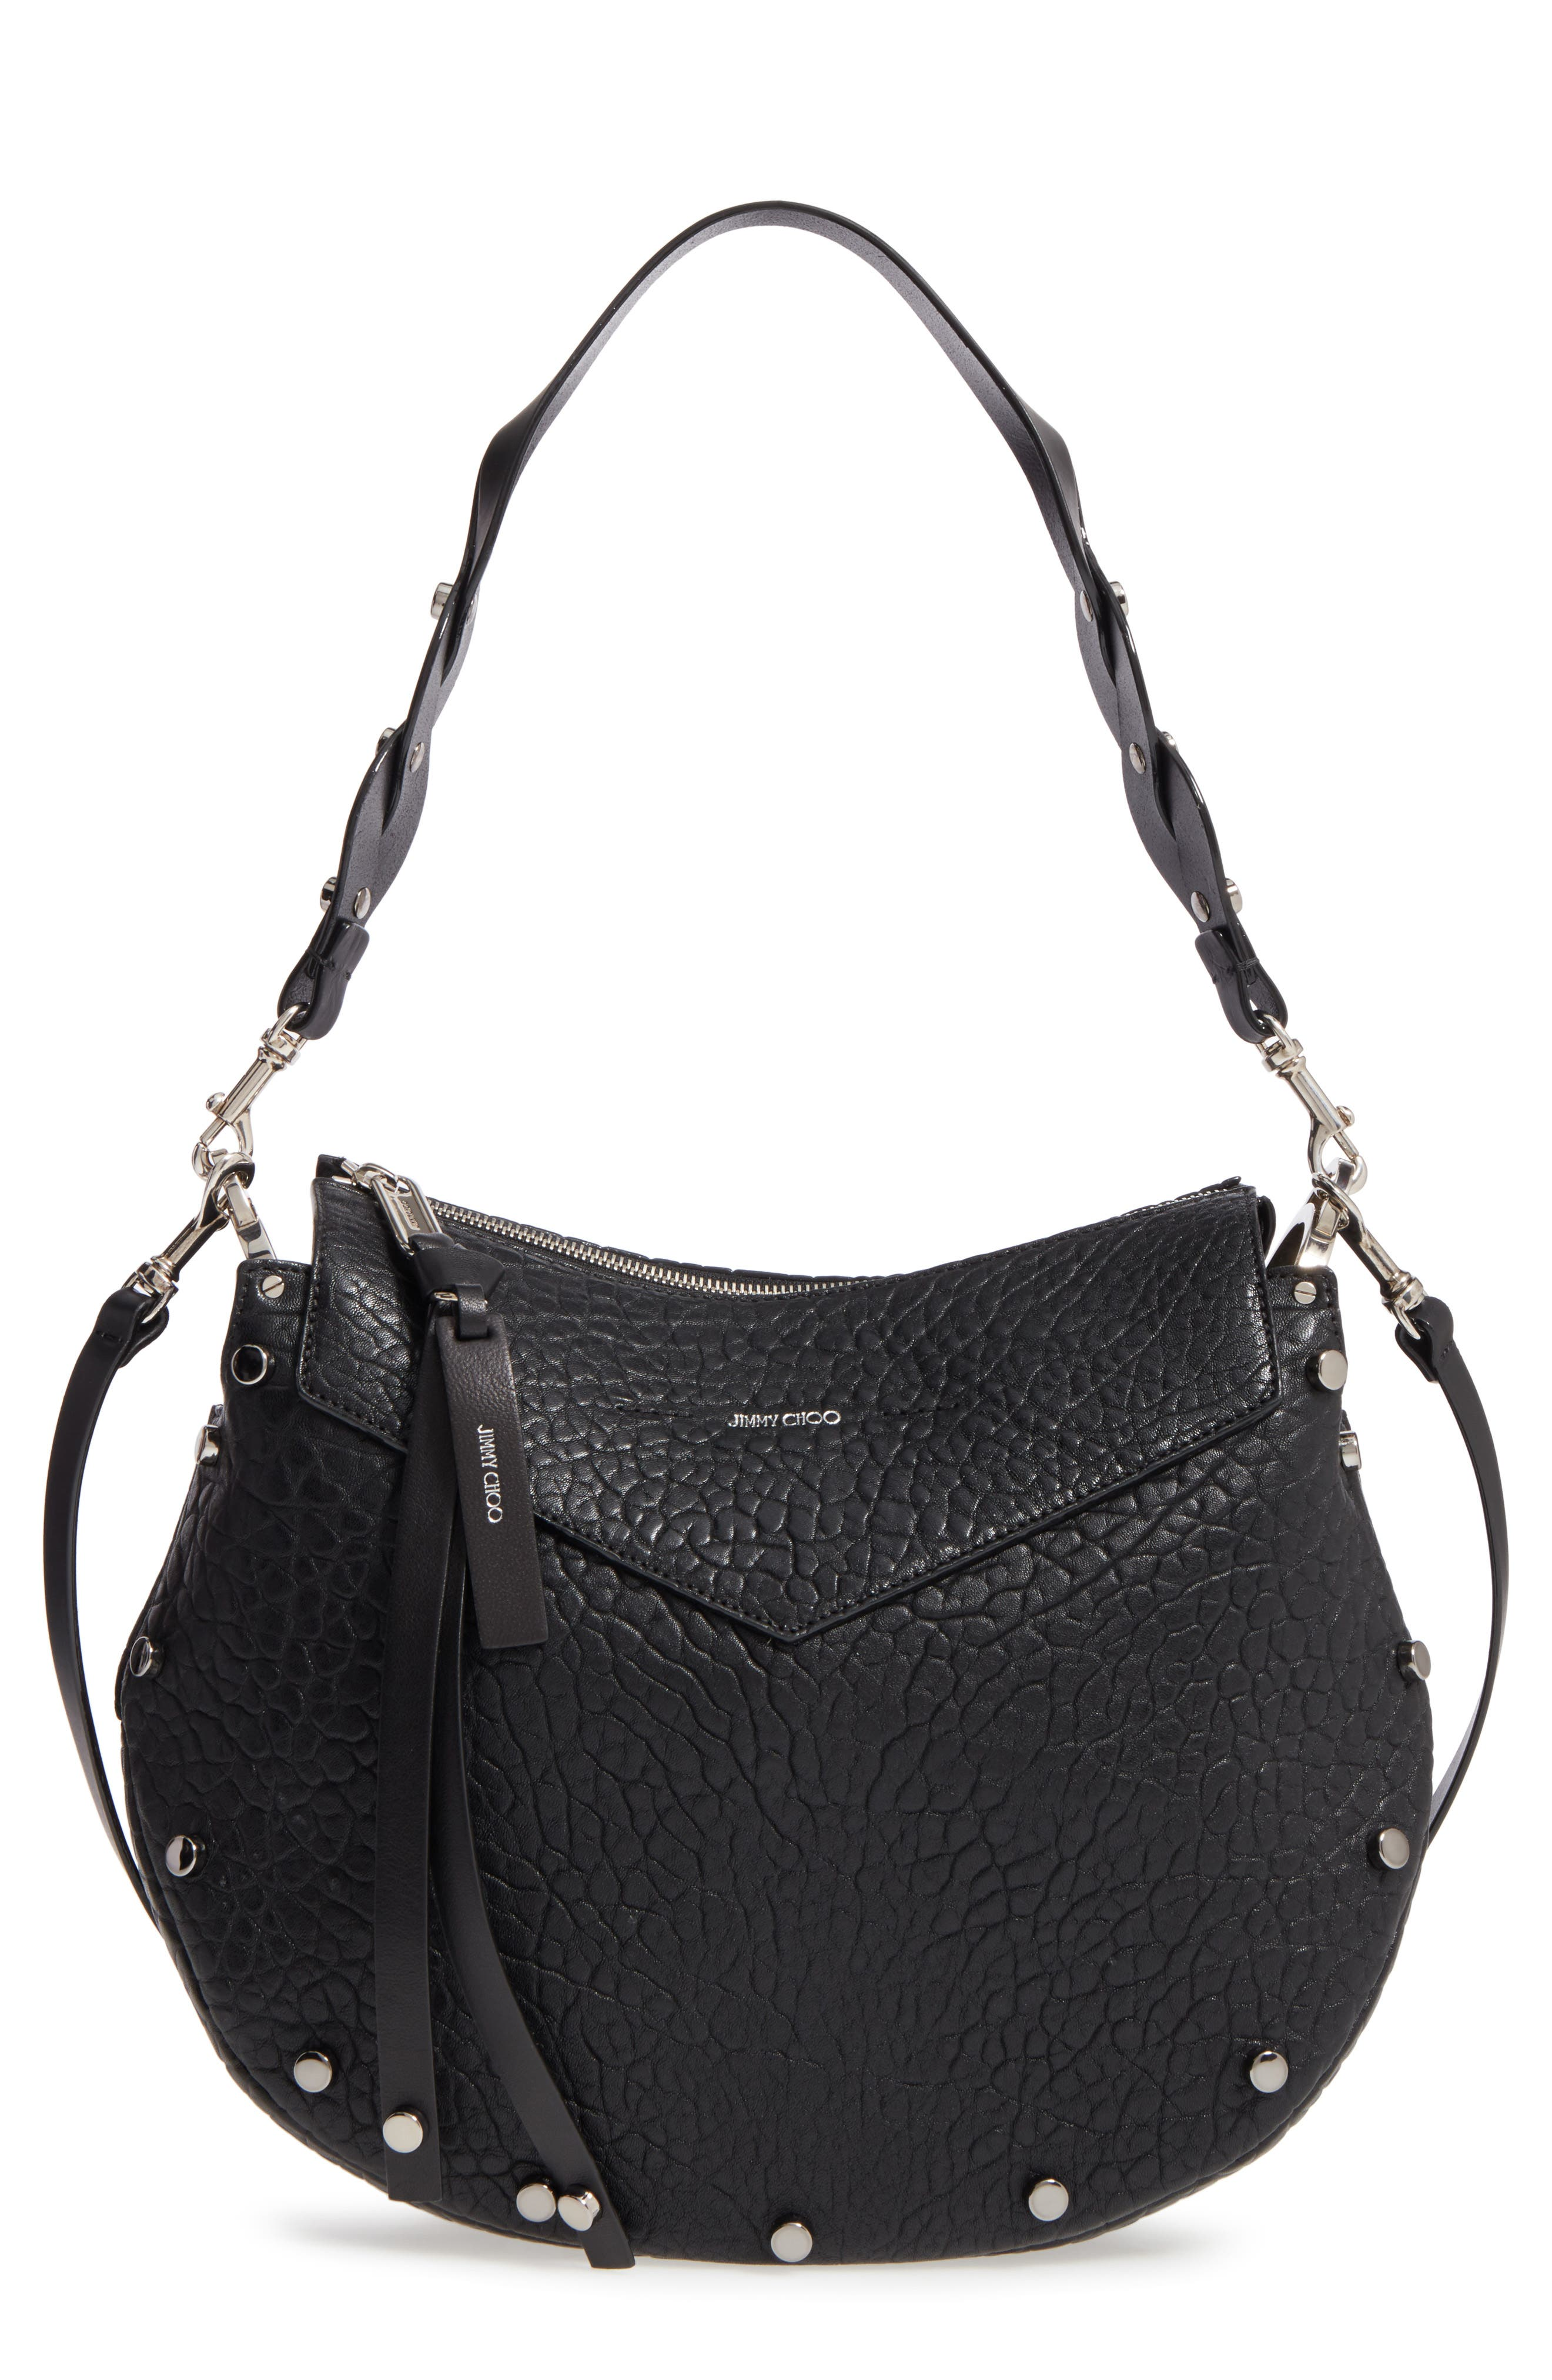 Jimmy Choo Artie Studded Leather Hobo Bag